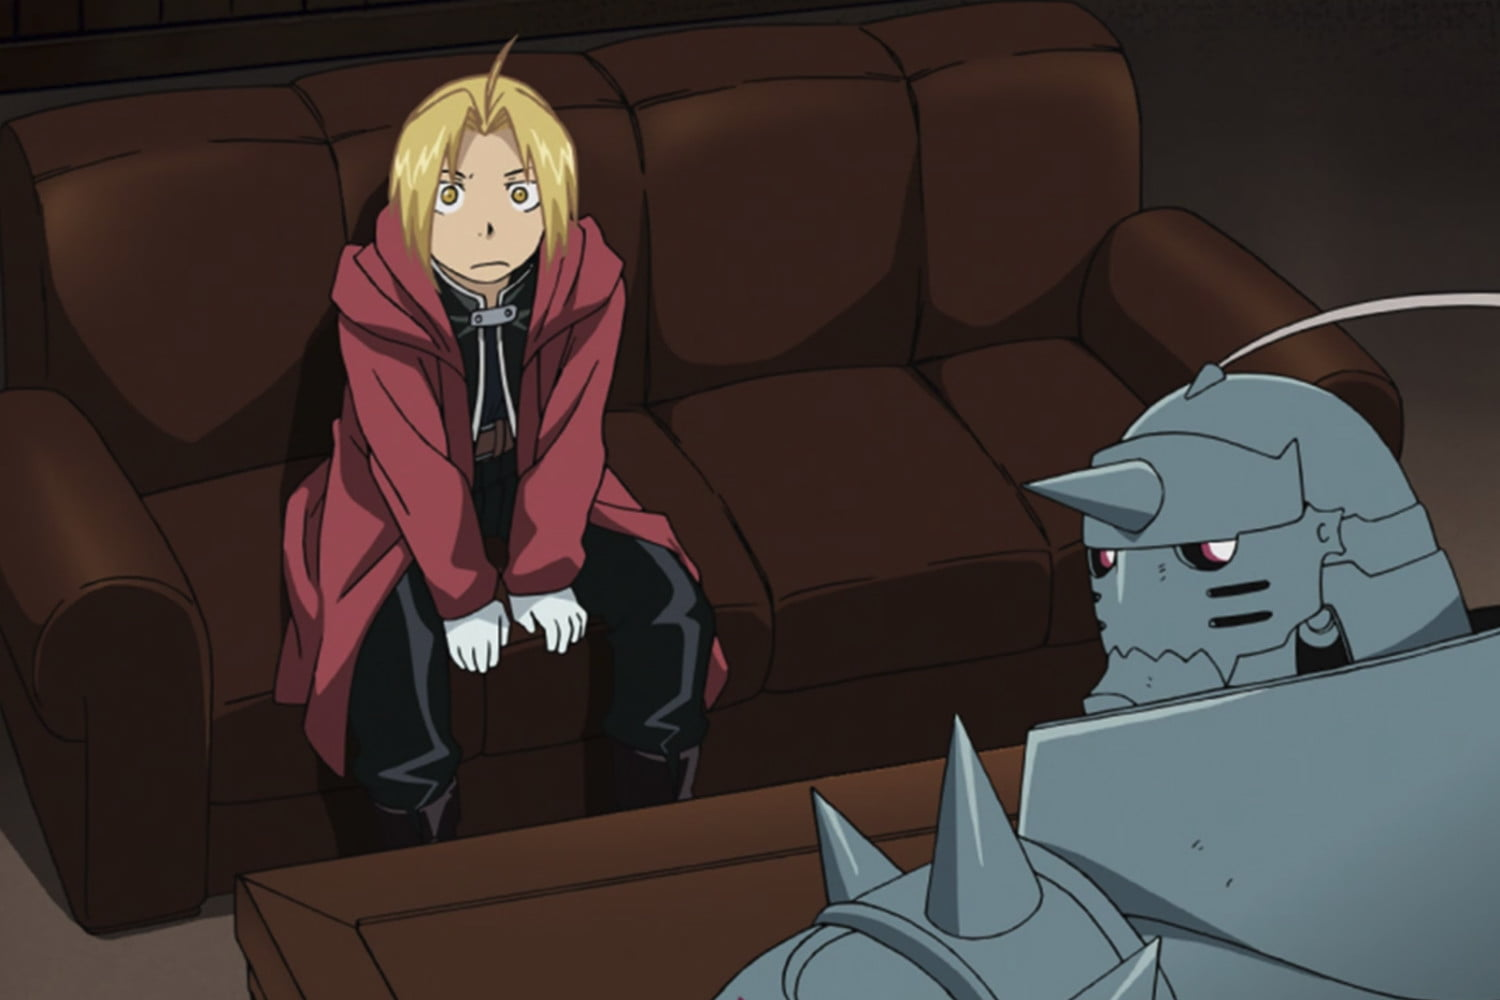 The Best Shows On Hulu Right Now November 2018 Page 2 Digital Wiring Someone Heres How To Draw Fullmetal Alchemist Characters Second Adaptation Of Popular Manga Brotherhood Hews Much More Closely Original Story Show Set In Fantasy